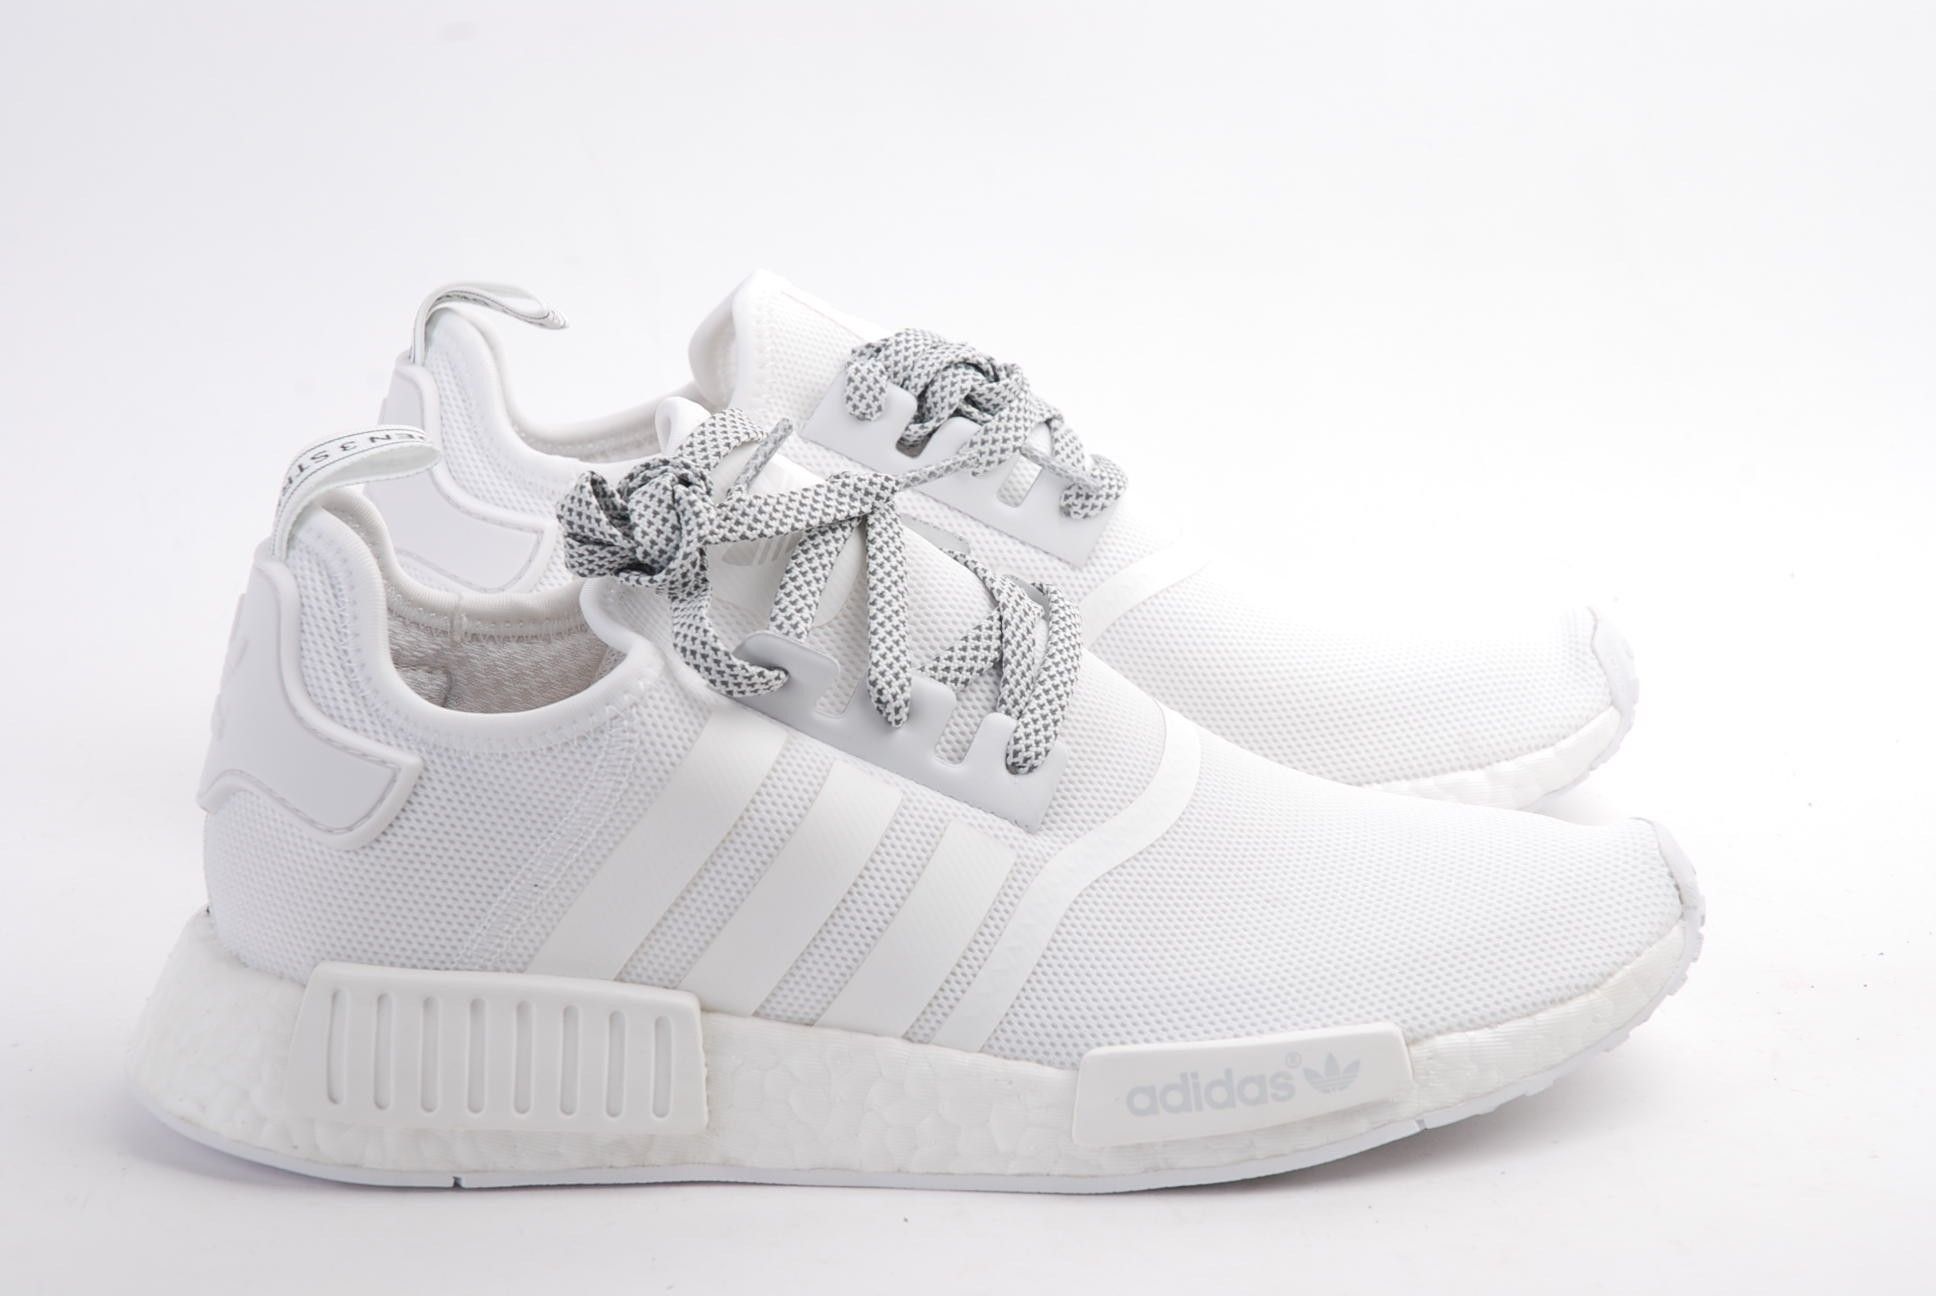 nmd r1 blanche Off 55% - www.bashhguidelines.org